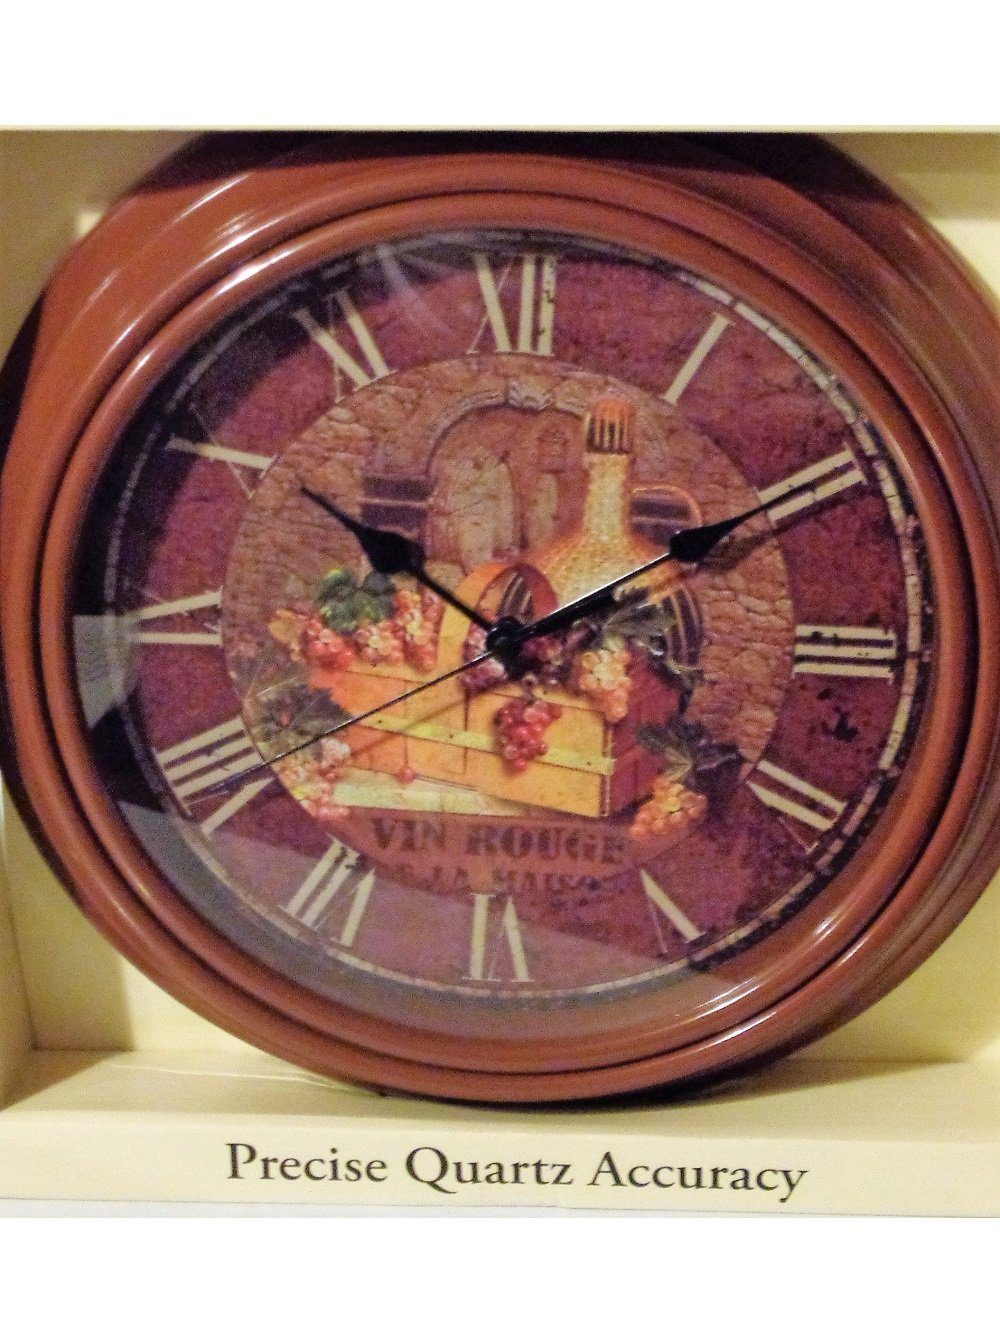 Vin Rouge Basket of Grapes Wine Kitchen Wall Clock